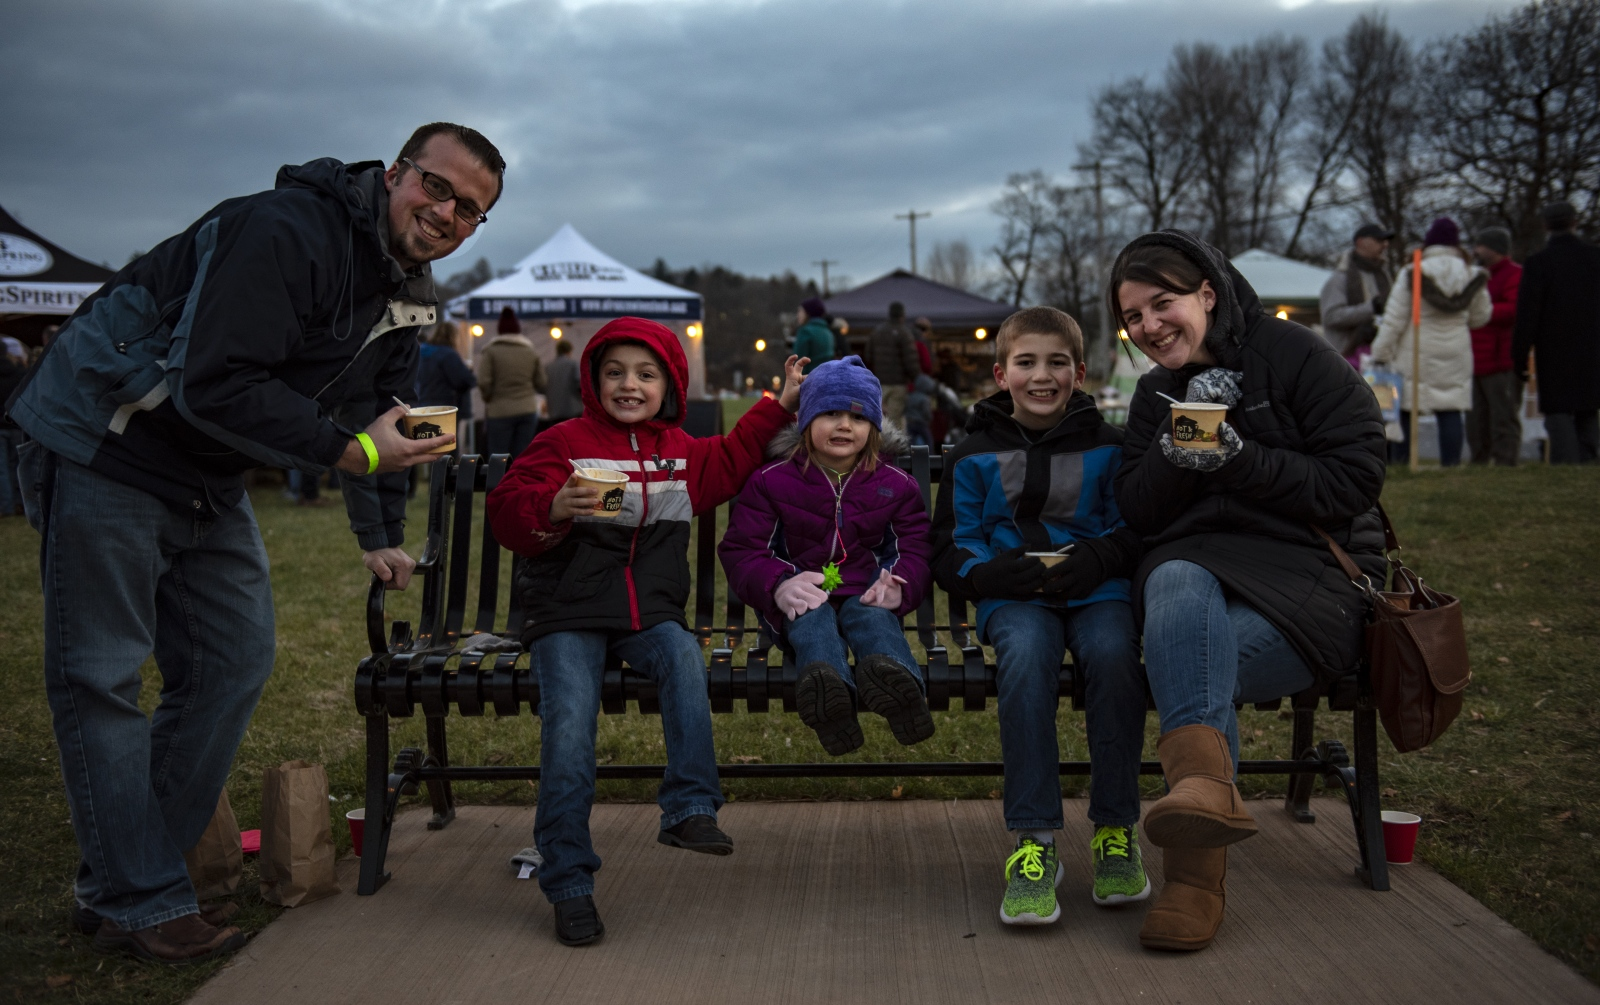 Caton's family sit together eating the food from Bellefonte Lights Winter Market Saturday, Dec. 8, 2018, in Bellefonte, Pa.